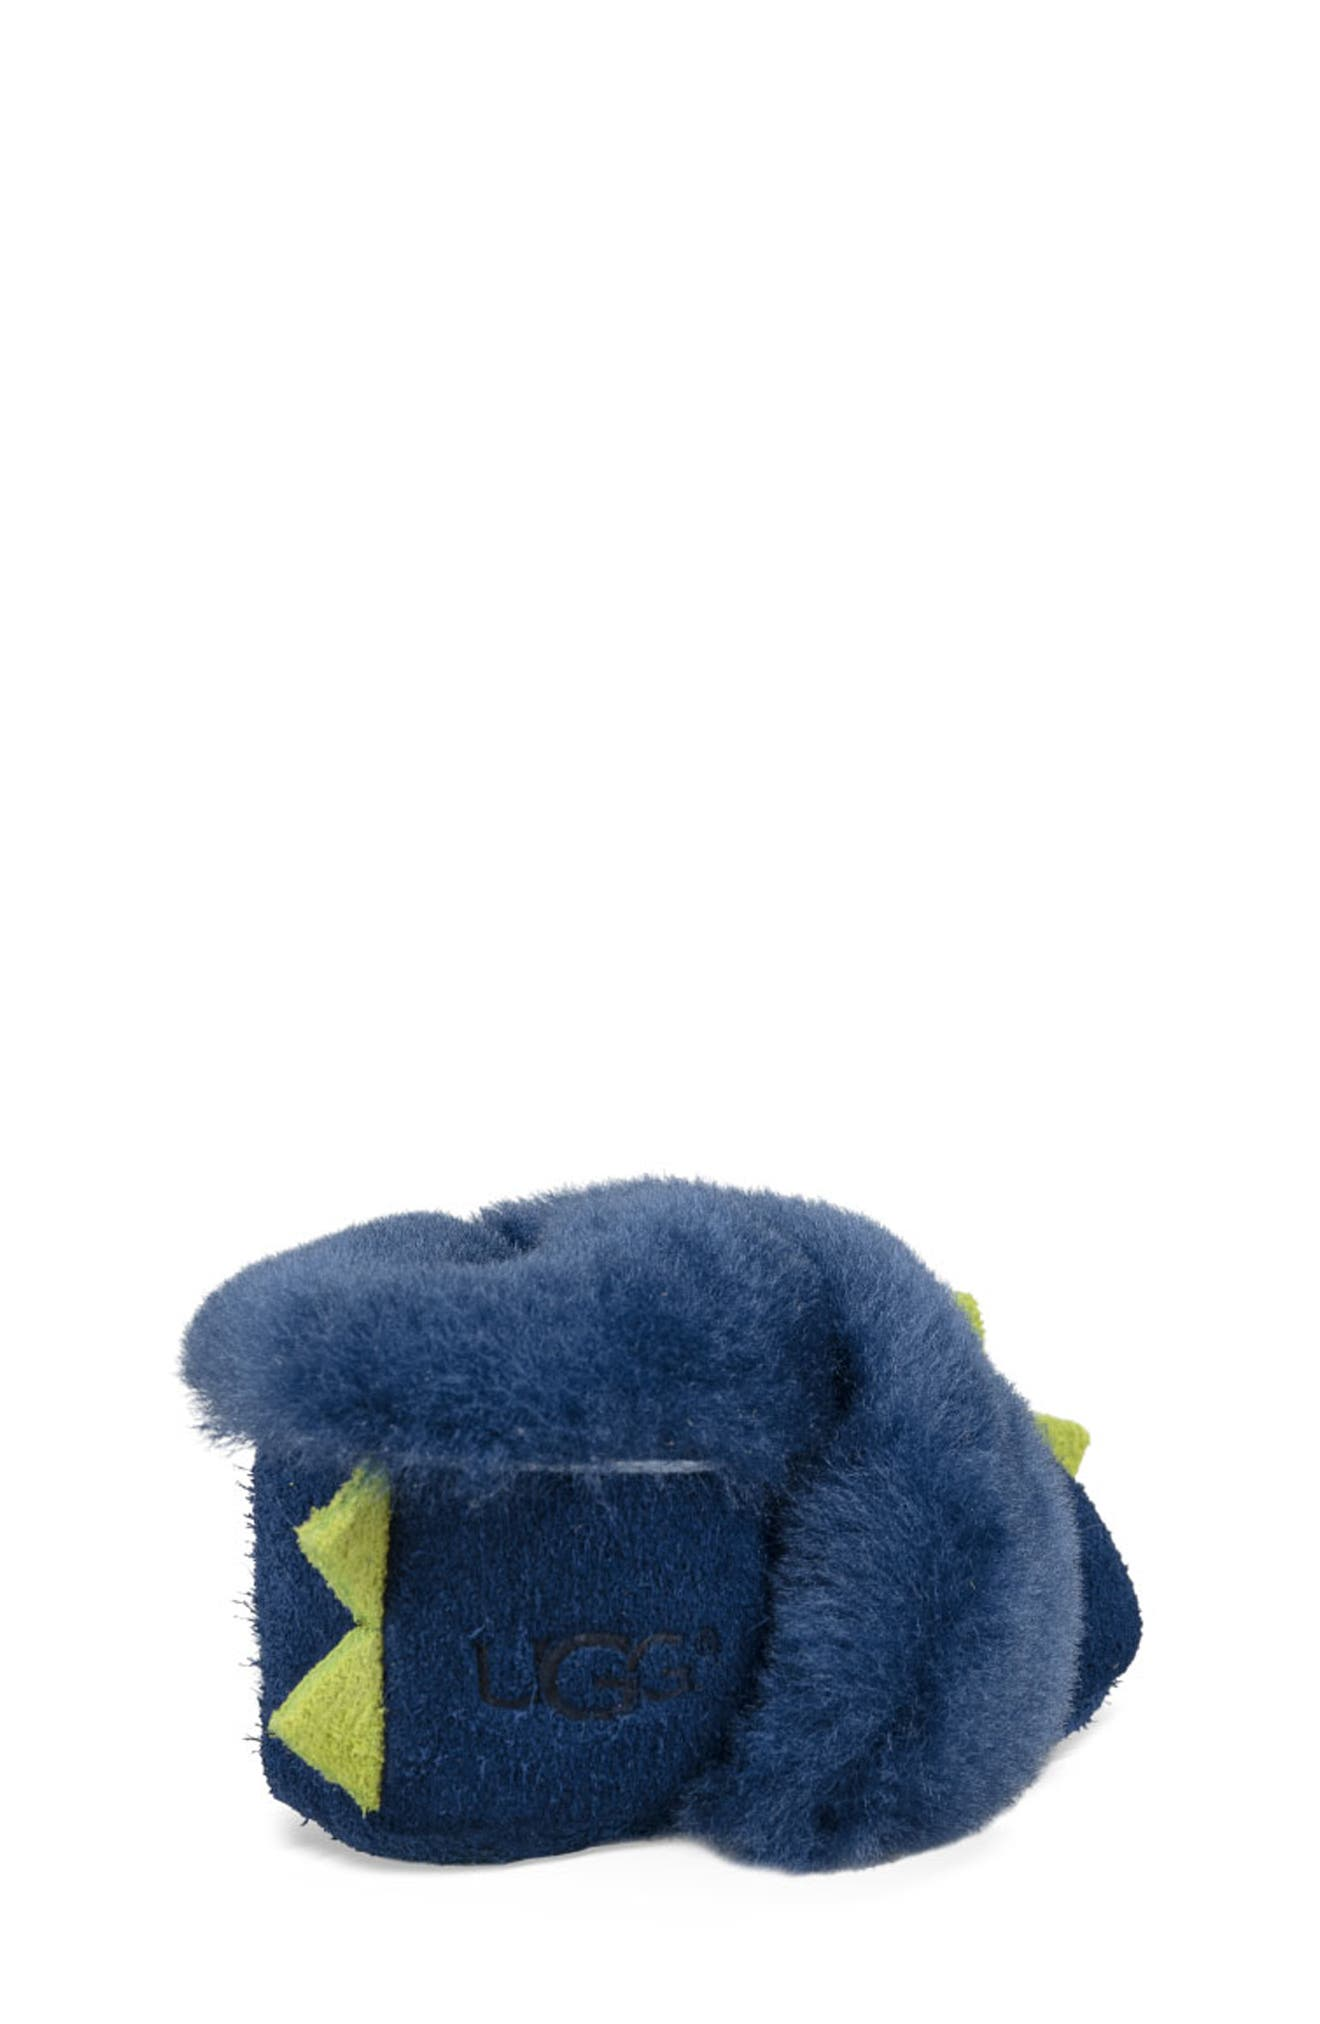 Dydo Solvi Genuine Shearling Cuffed Bootie,                             Alternate thumbnail 2, color,                             NAVY / BRIGHT CHARTREUSE